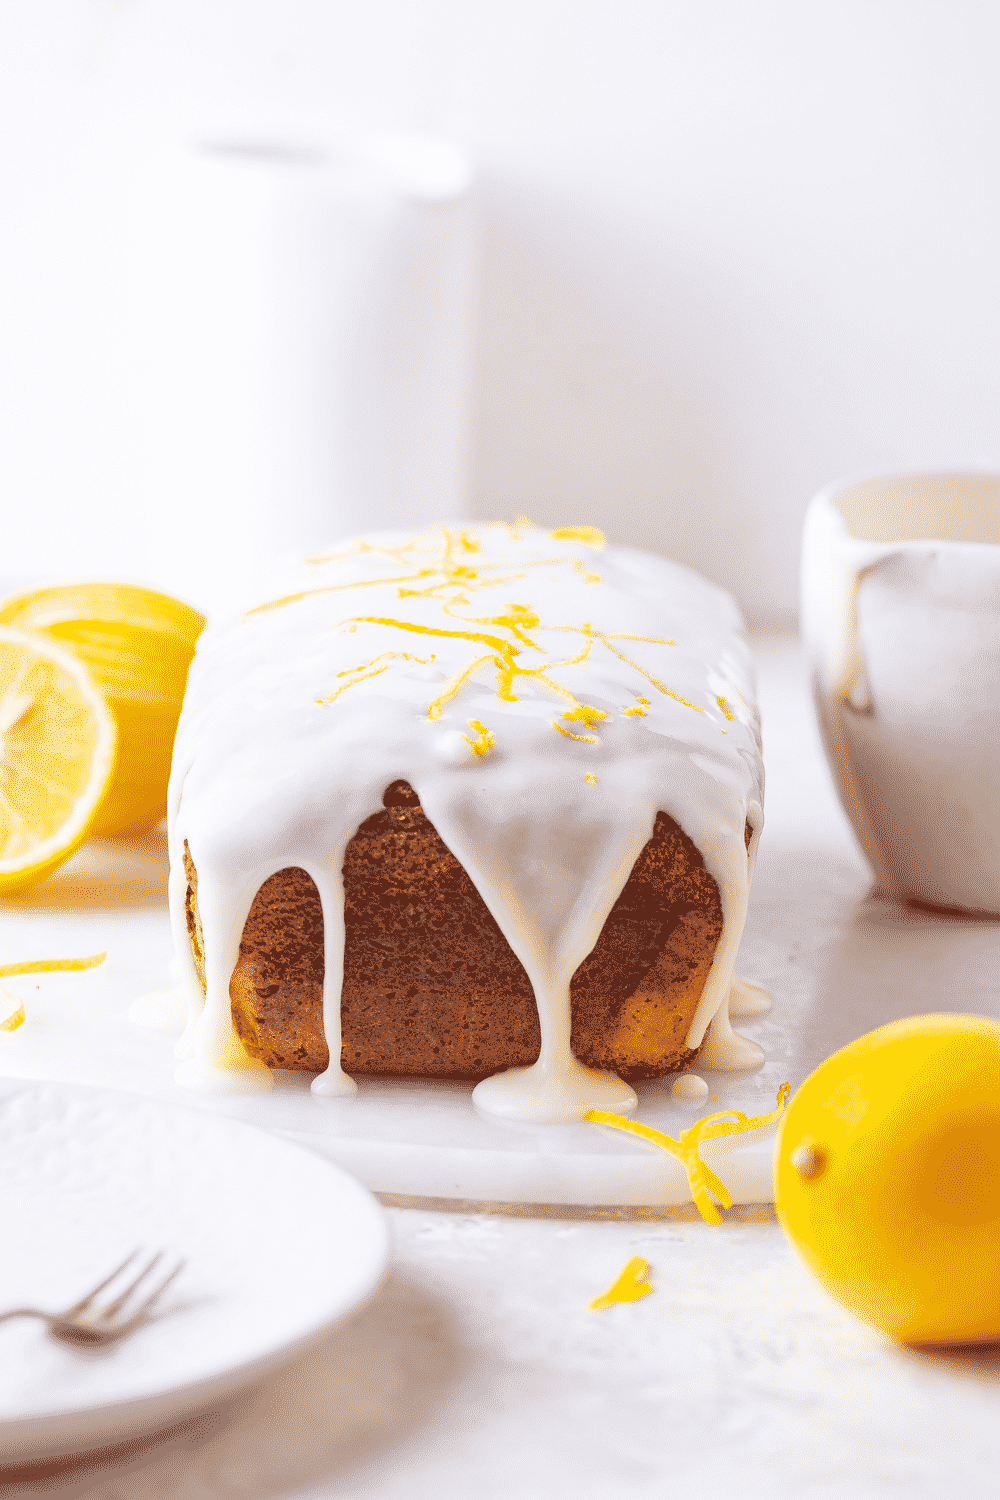 A loaf of keto lemon pound cake on a white round cutting board. There are a few lemons around the cake. A white plate with a fork on it is in front of the keto cake.